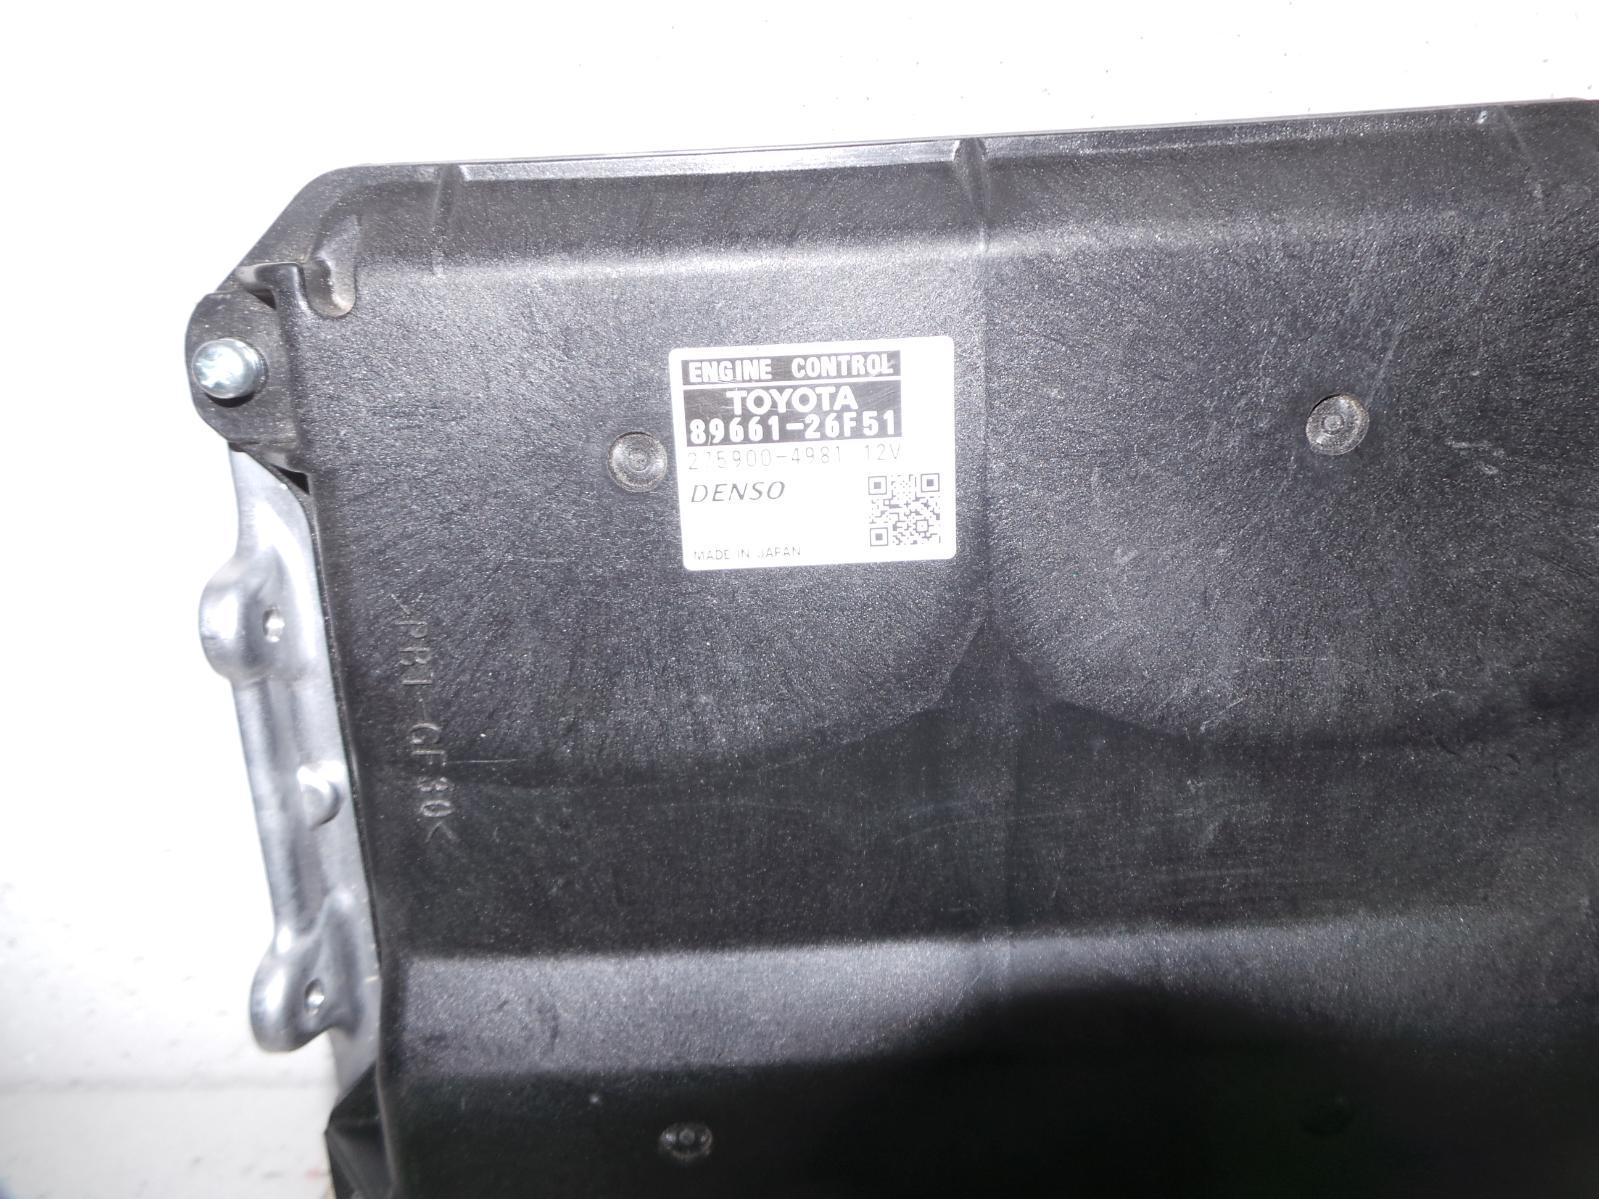 TOYOTA HIACE, Ecu, ENGINE ECU, 3.0, DIESEL, P/N 89661-26F51, ECU ONLY, KDH, 09/06-